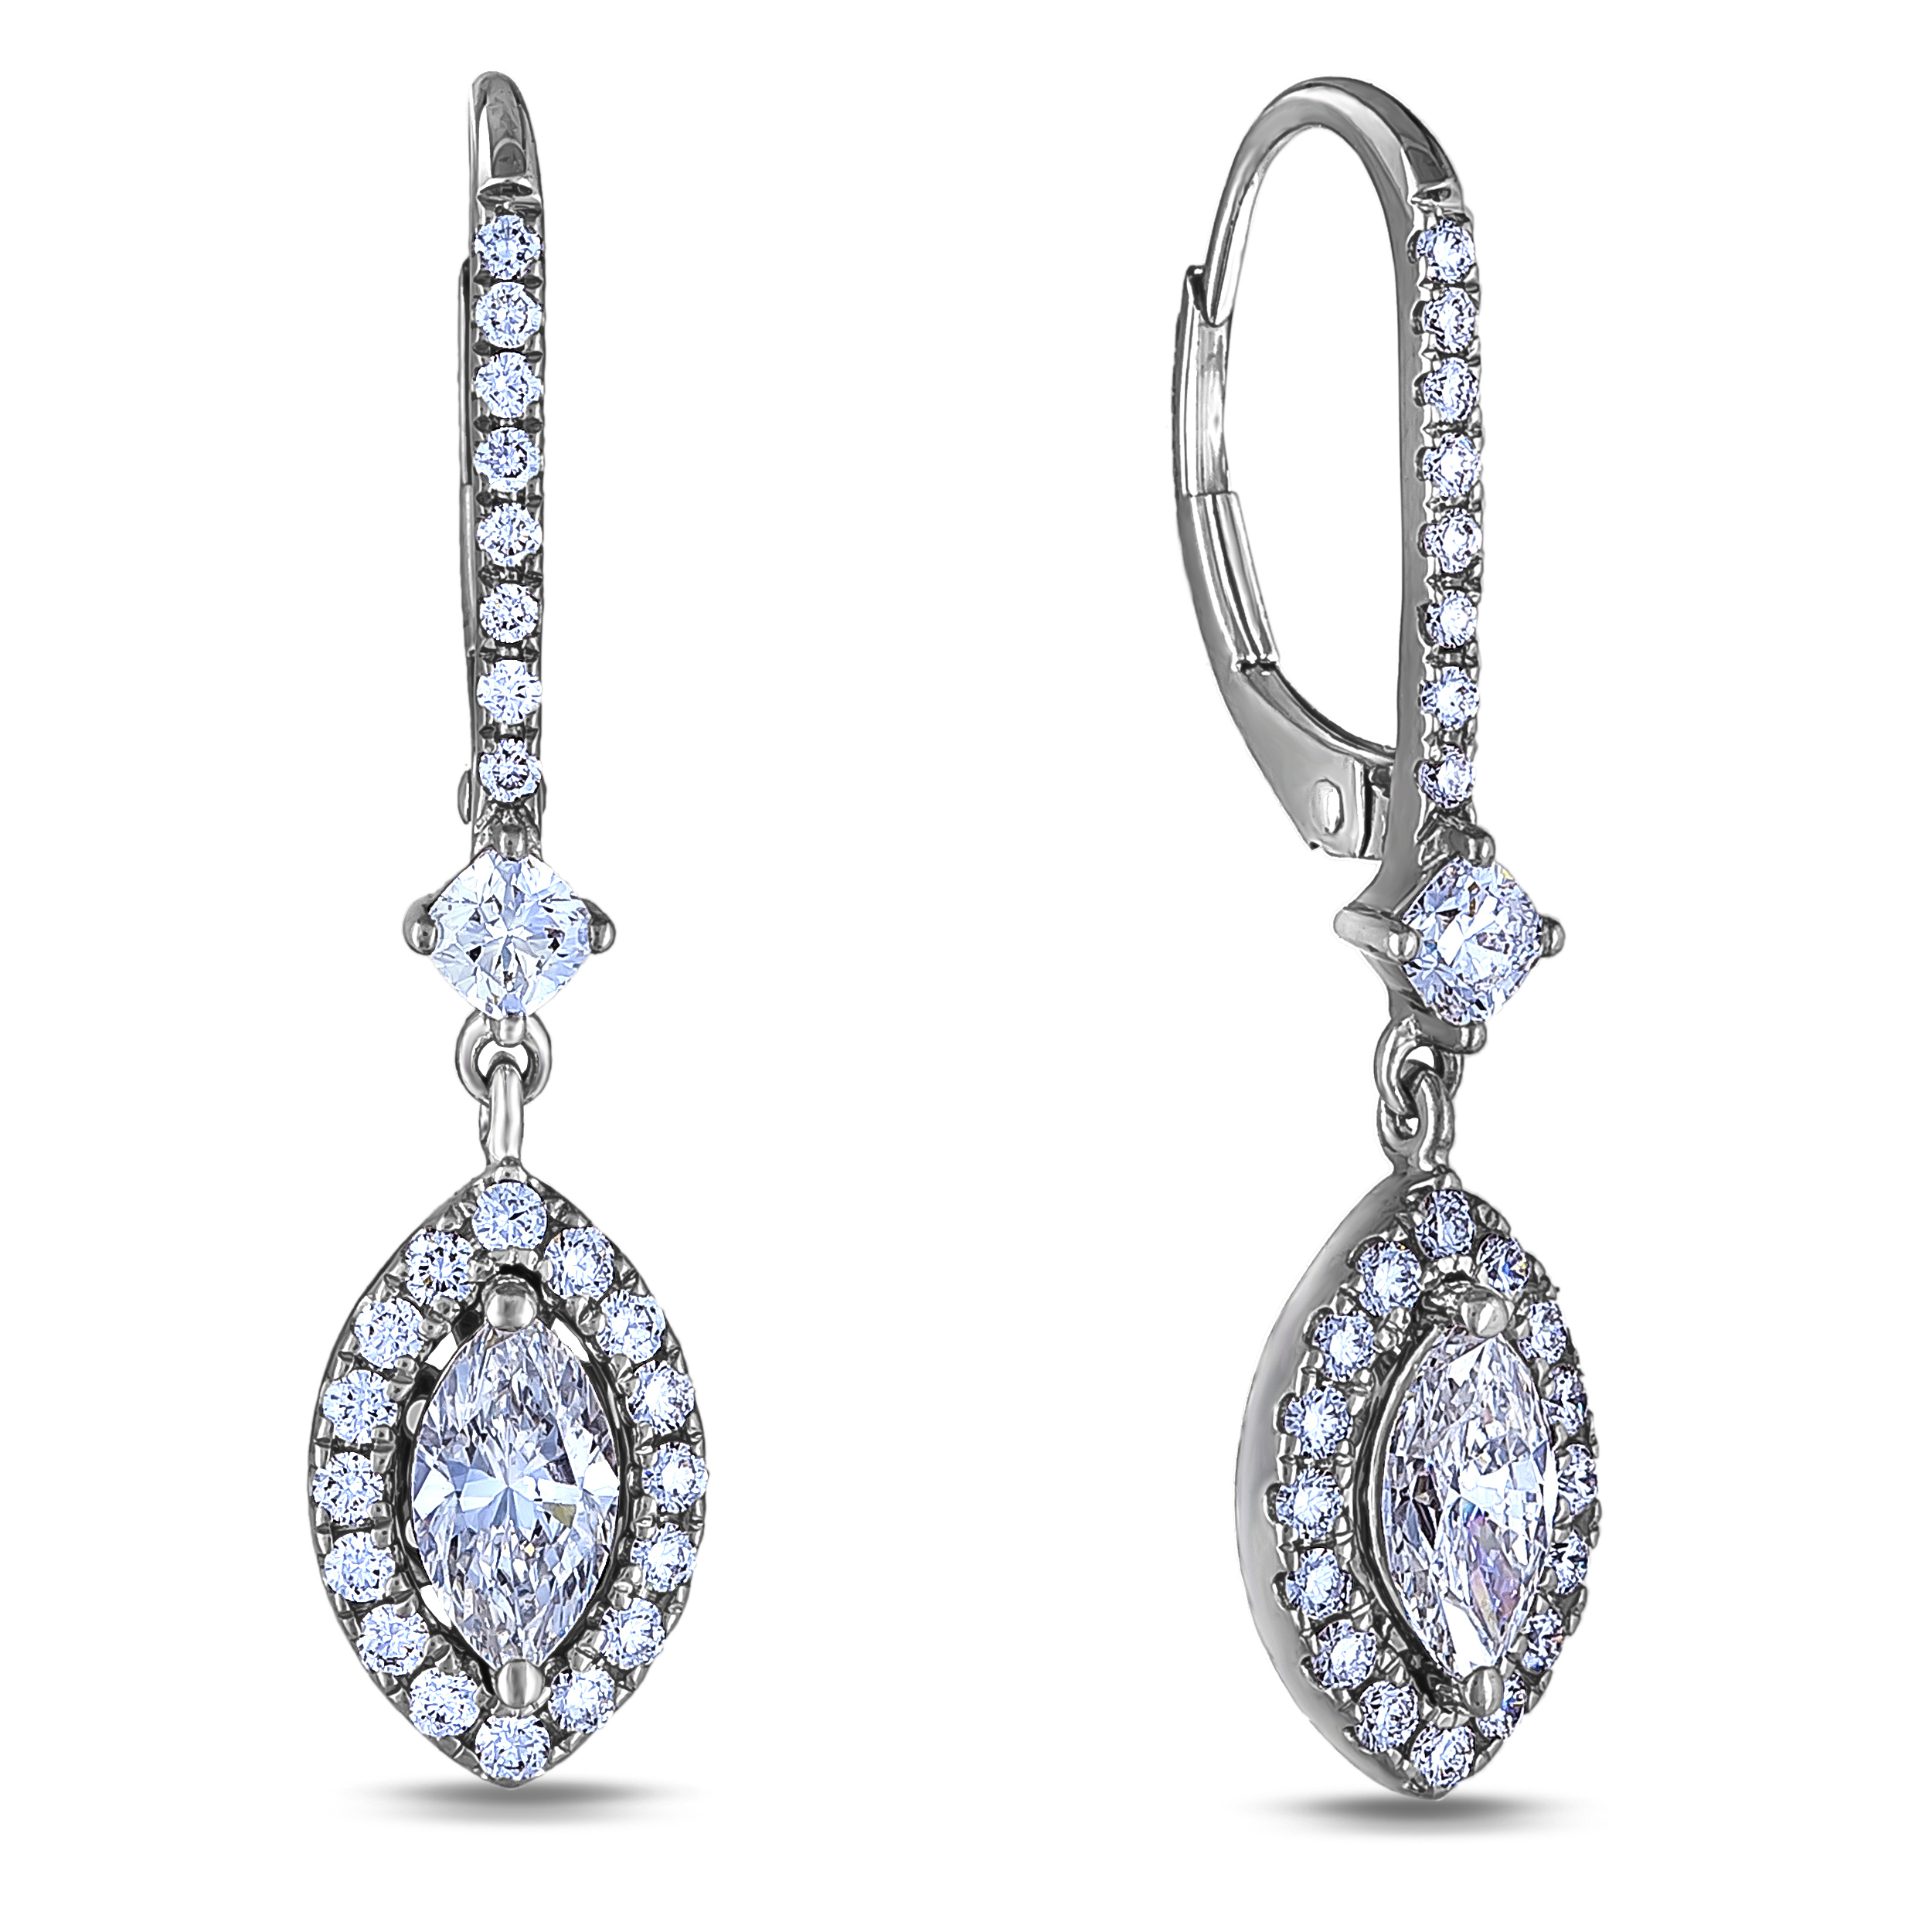 Diamond Dangle Earrings SGE329-MQ (Earrings)